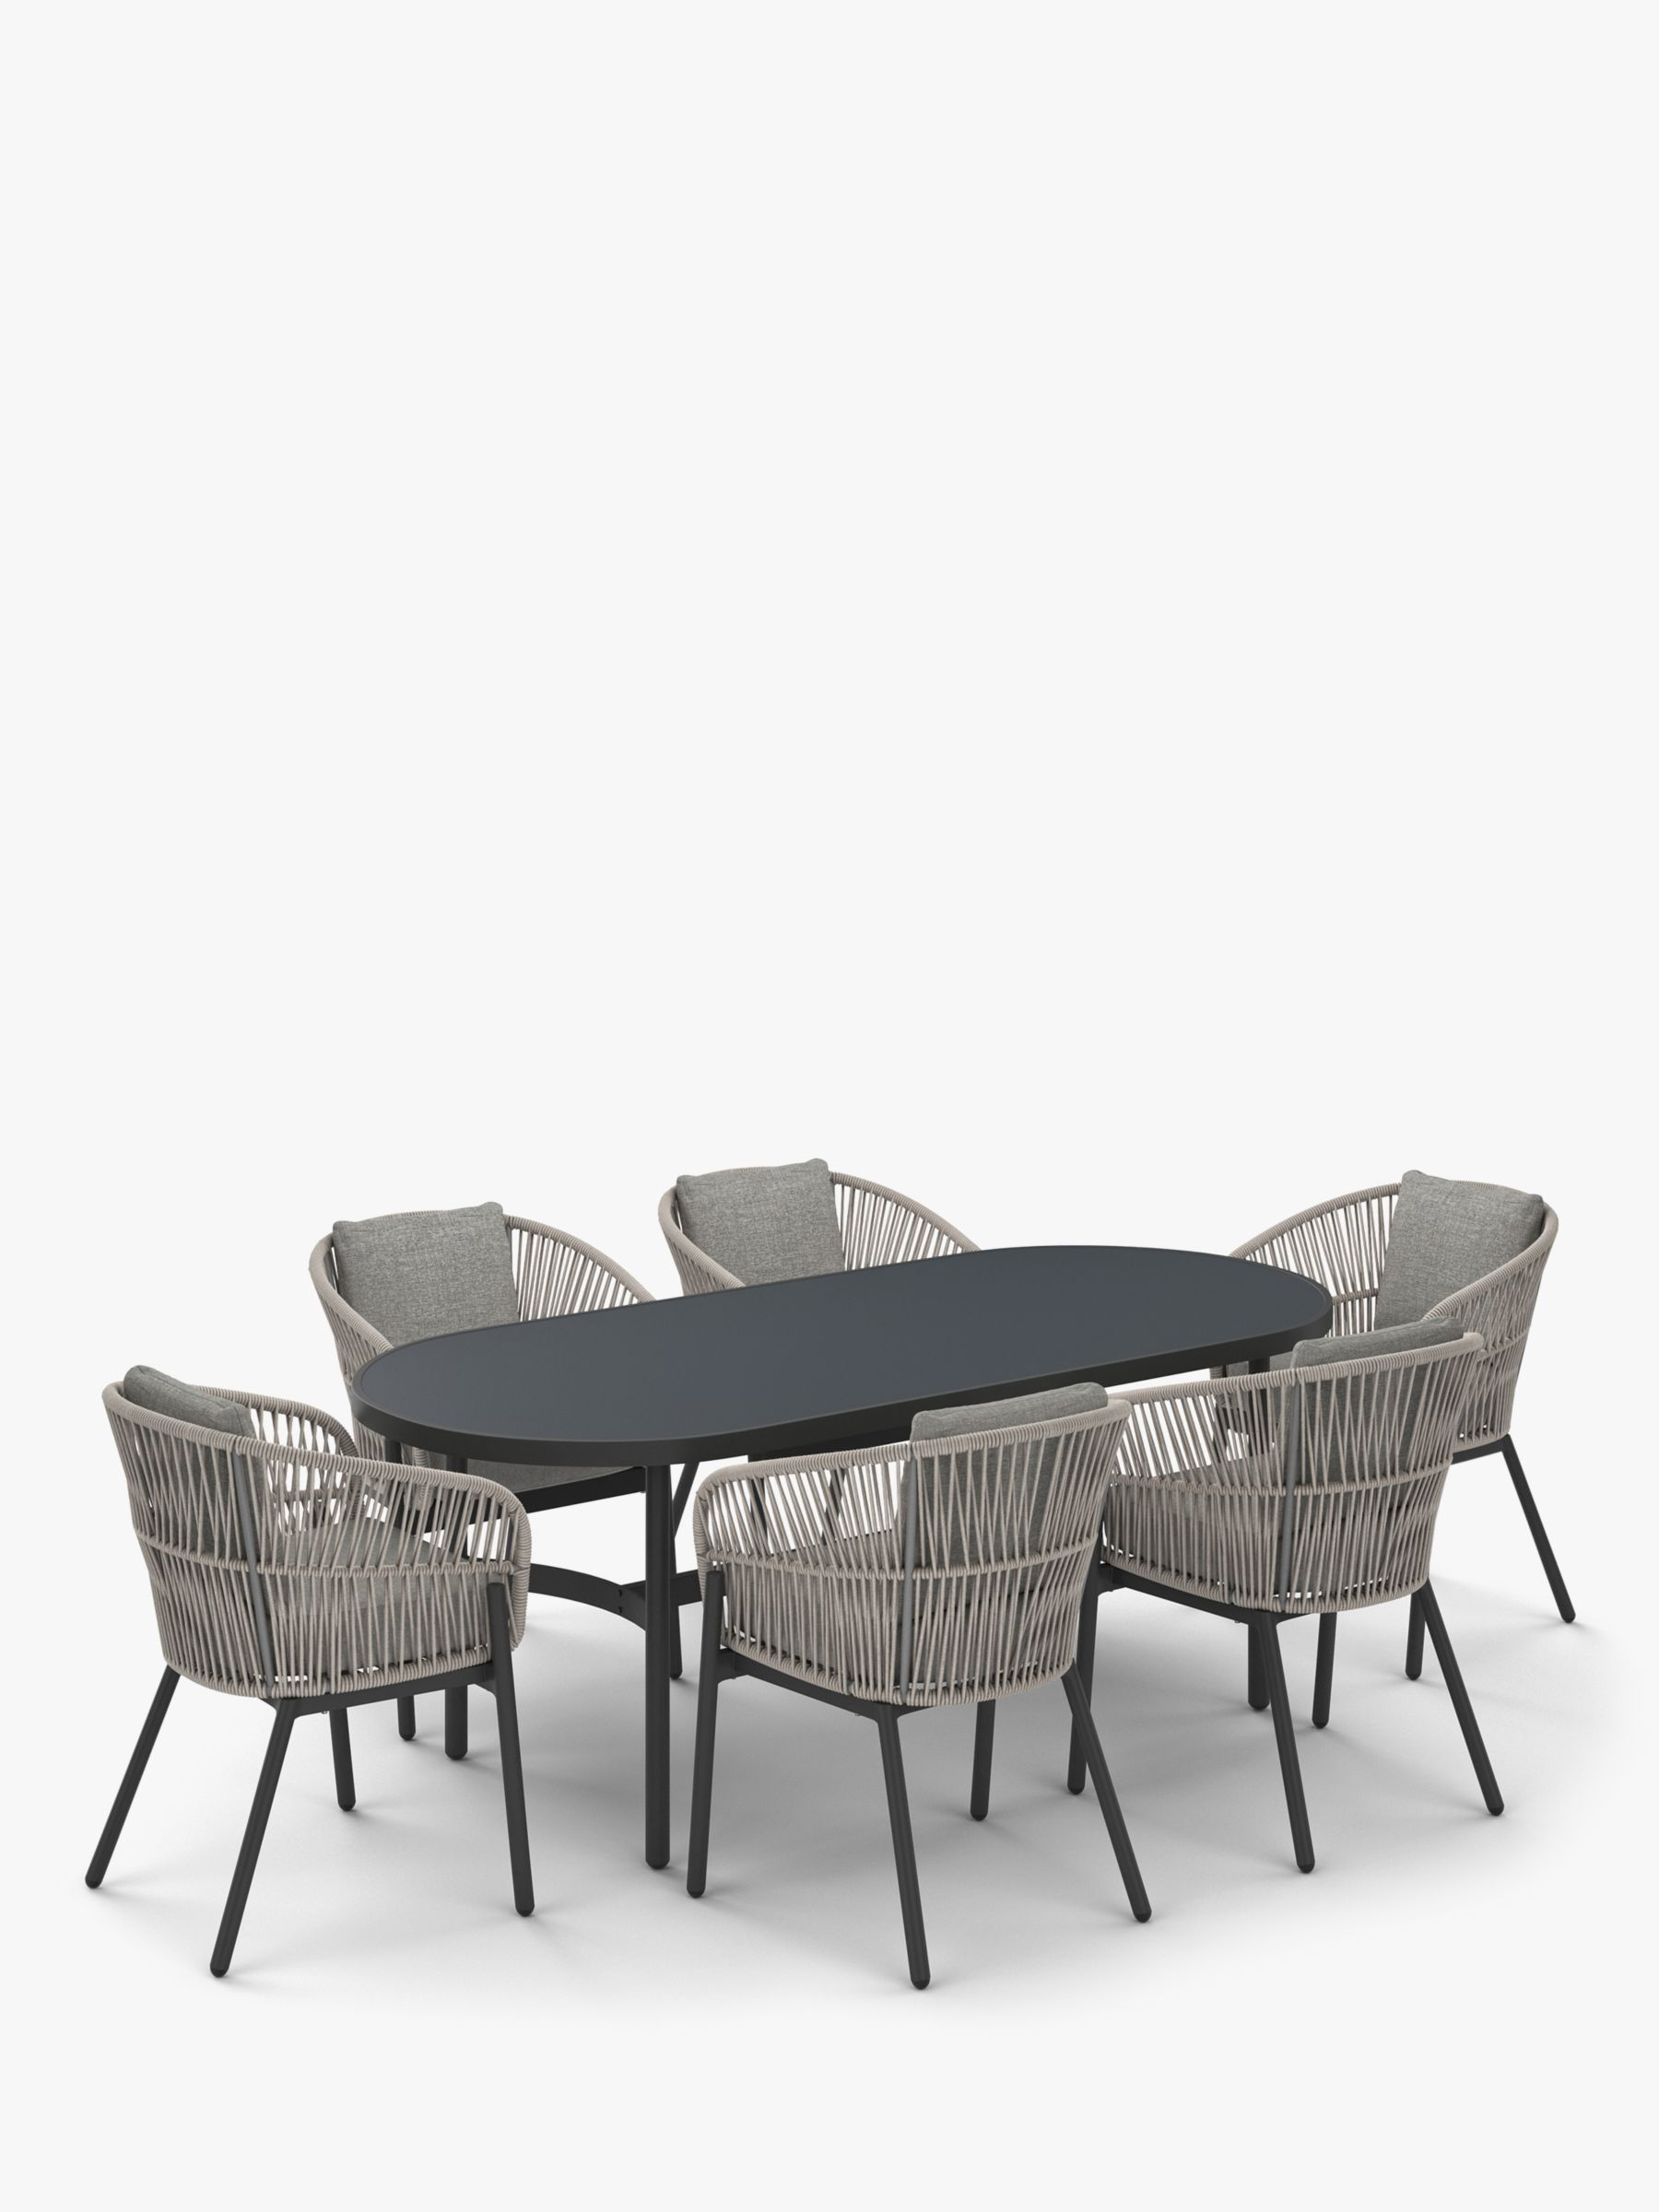 John Lewis & Partners Basket 9 Seater Oval Garden Dining Table ...